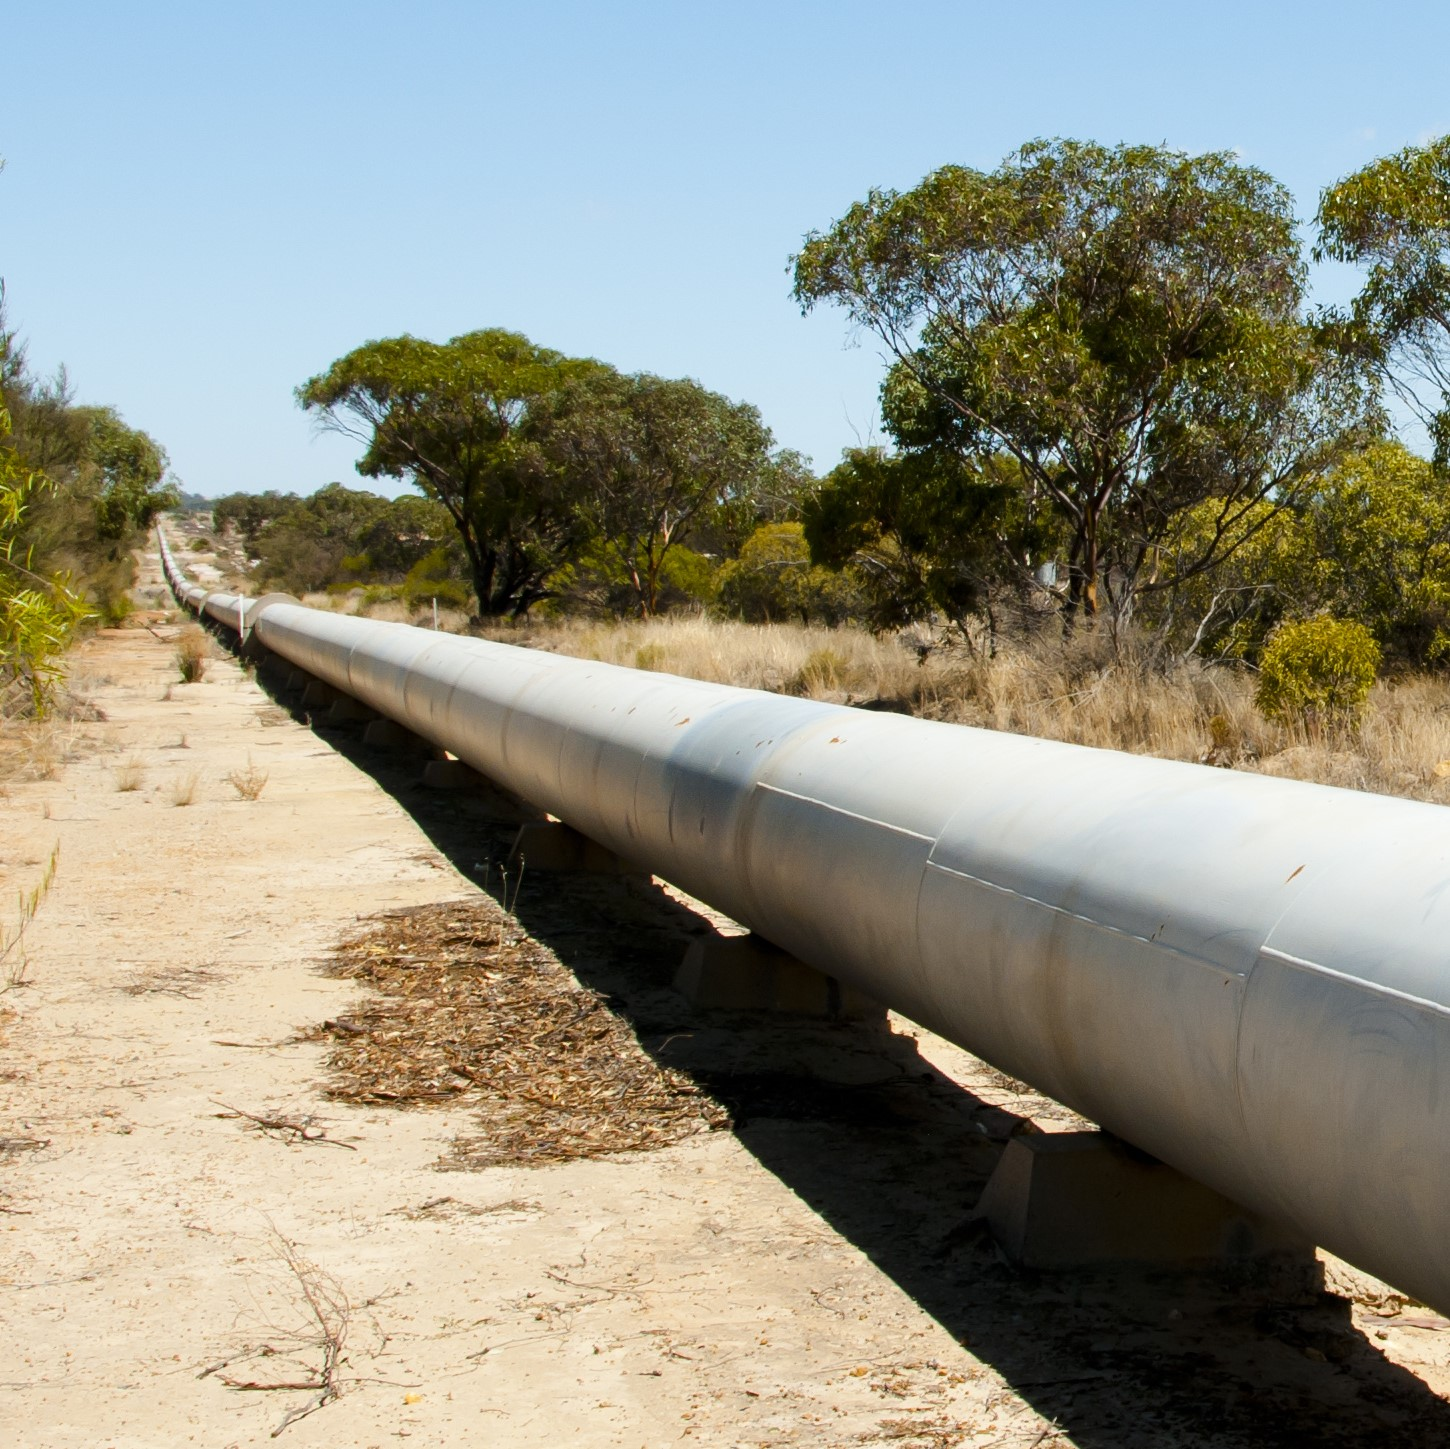 Government again break faith with Broken Hill community - refuse to release pipeline business case